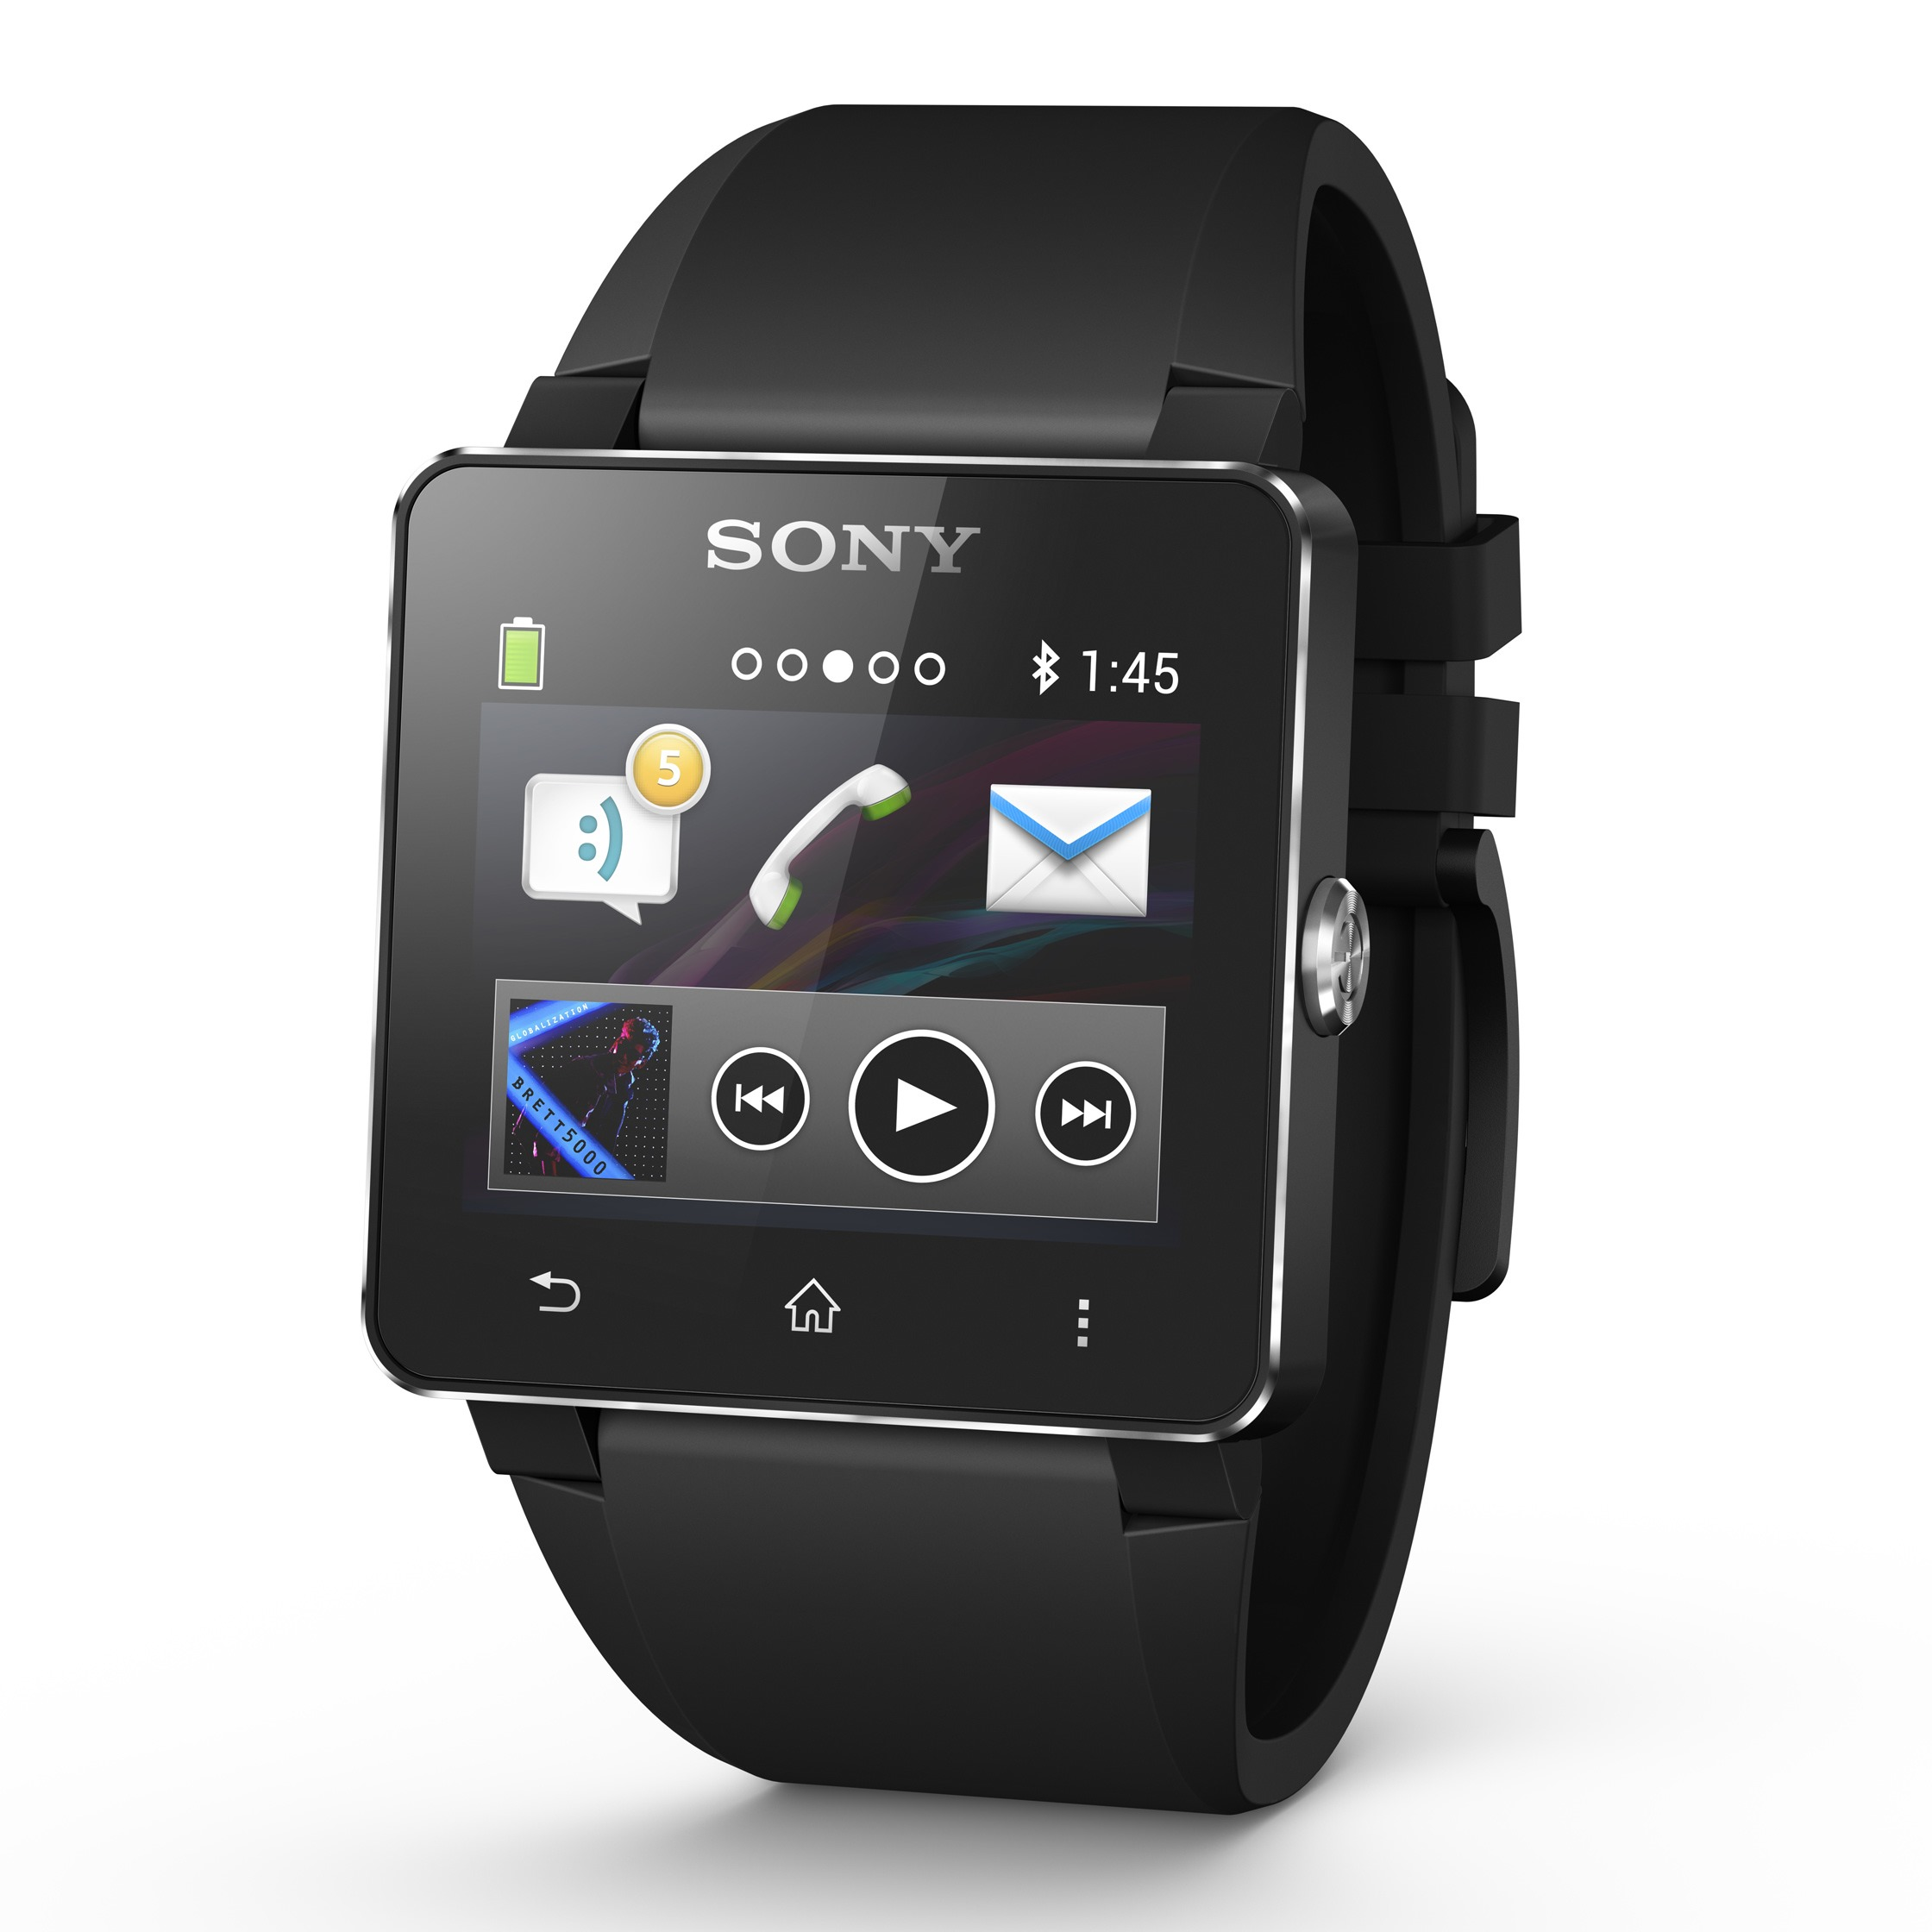 phone has android watch mobile phone kk z1 price VERSION: Copy the